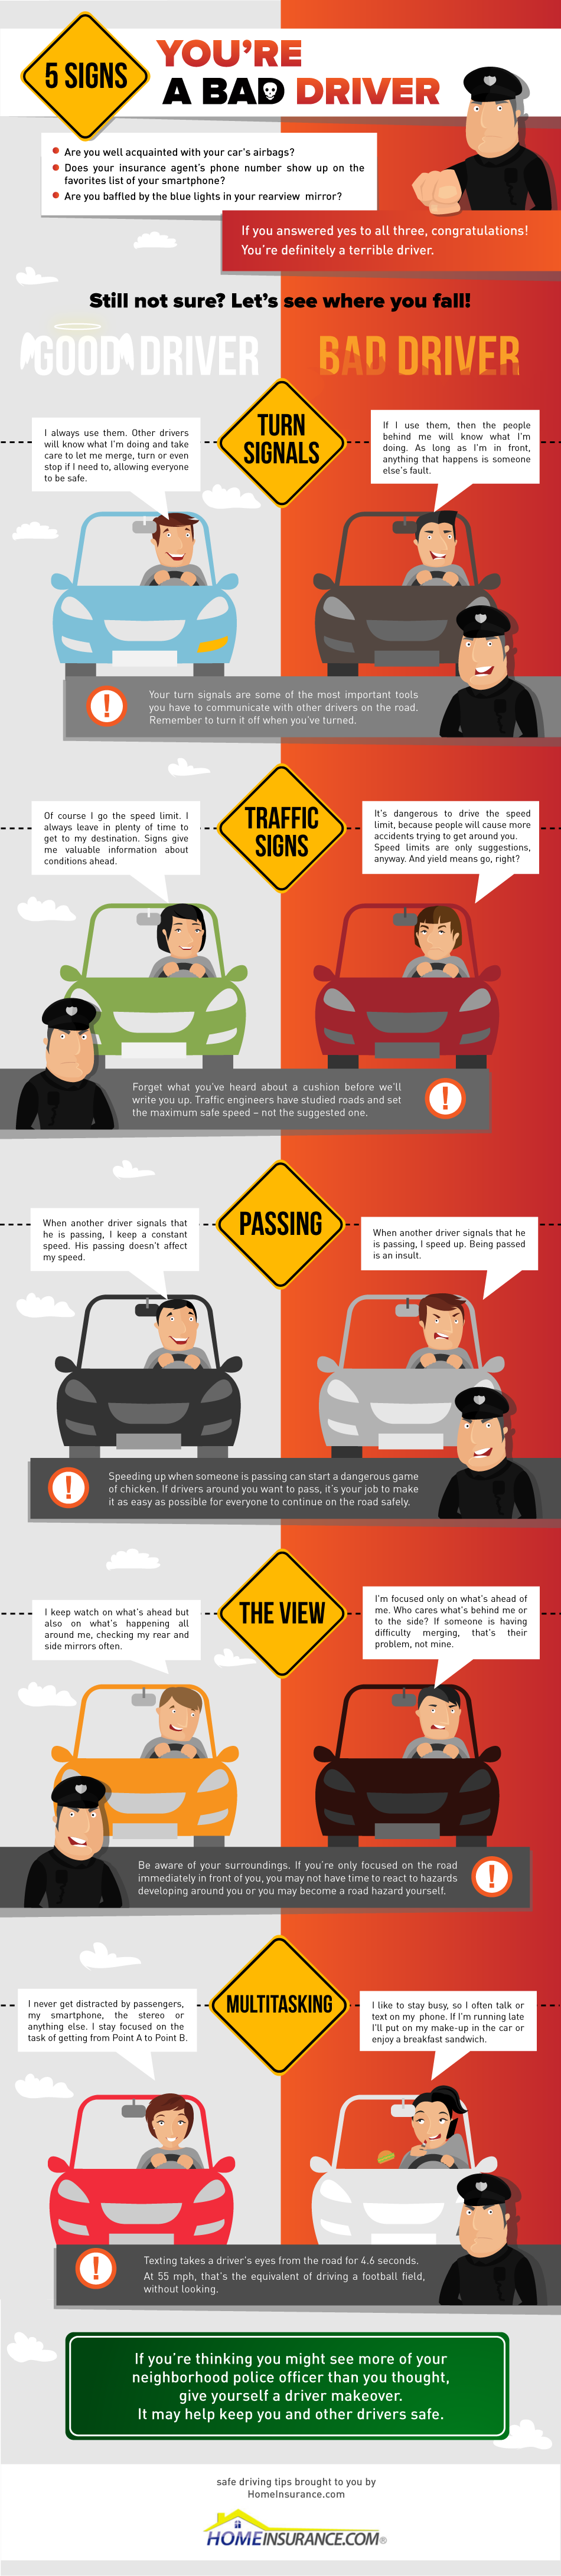 5 Signs You Re A Bad Driver Bad Drivers Safe Driving Tips